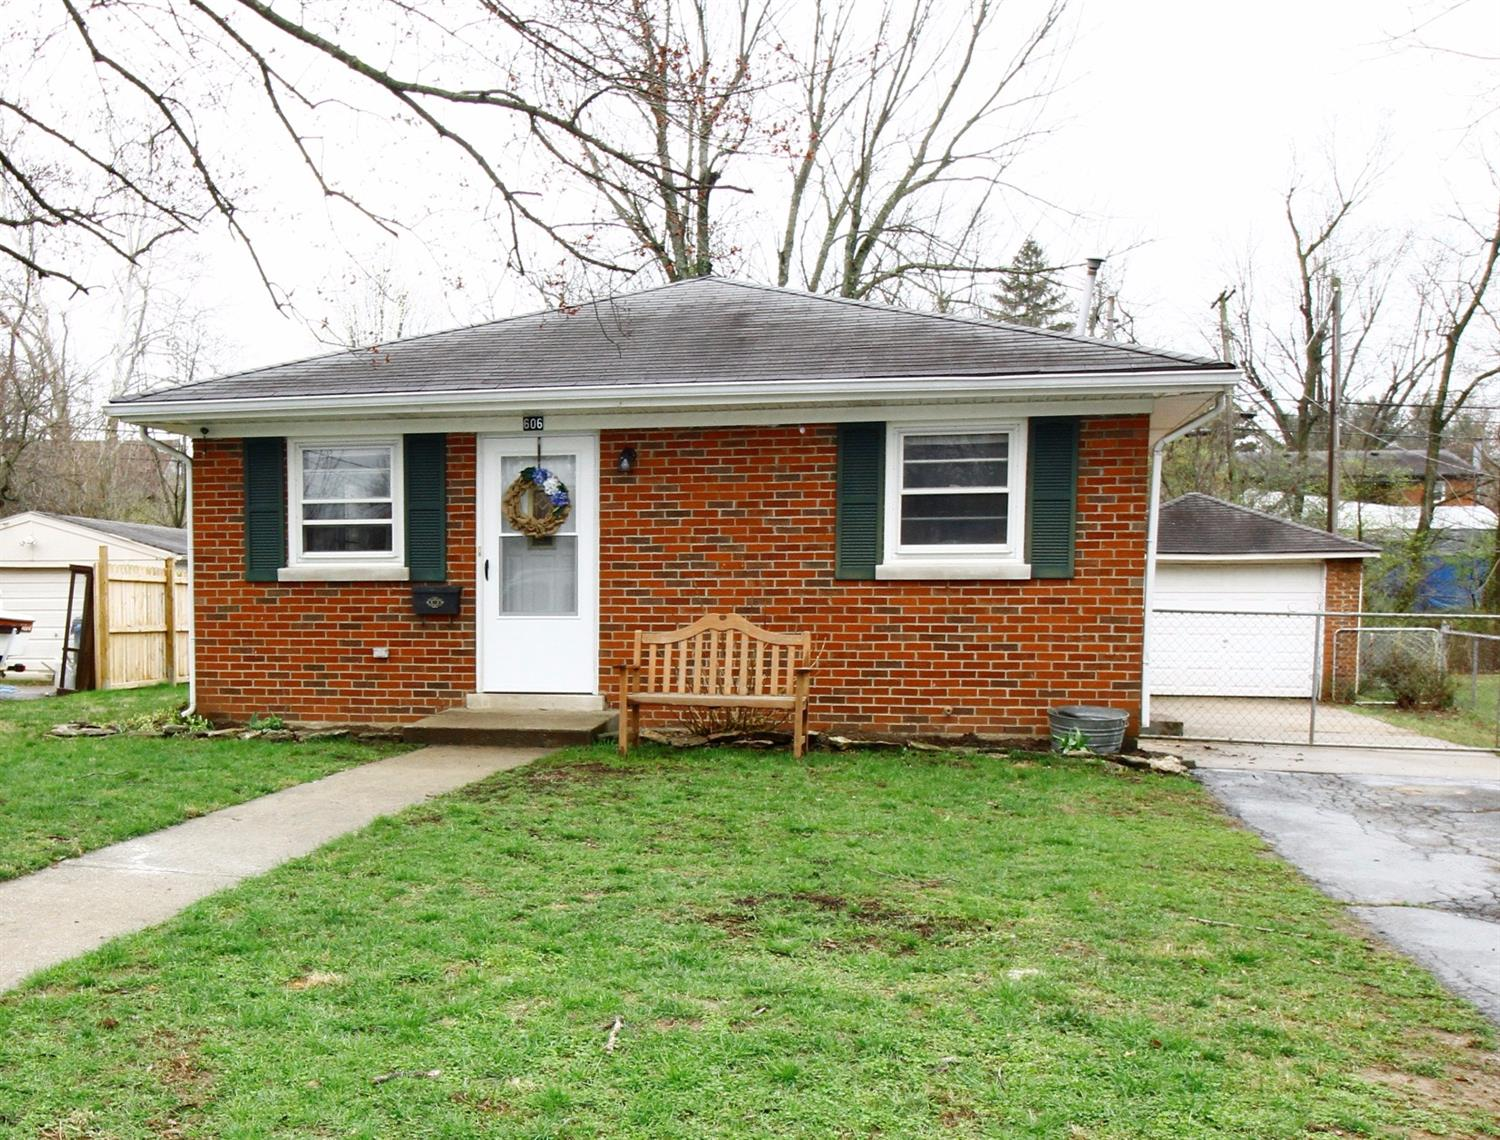 Home For Sale at 712 Zorn Ct, Lexington, KY 40505